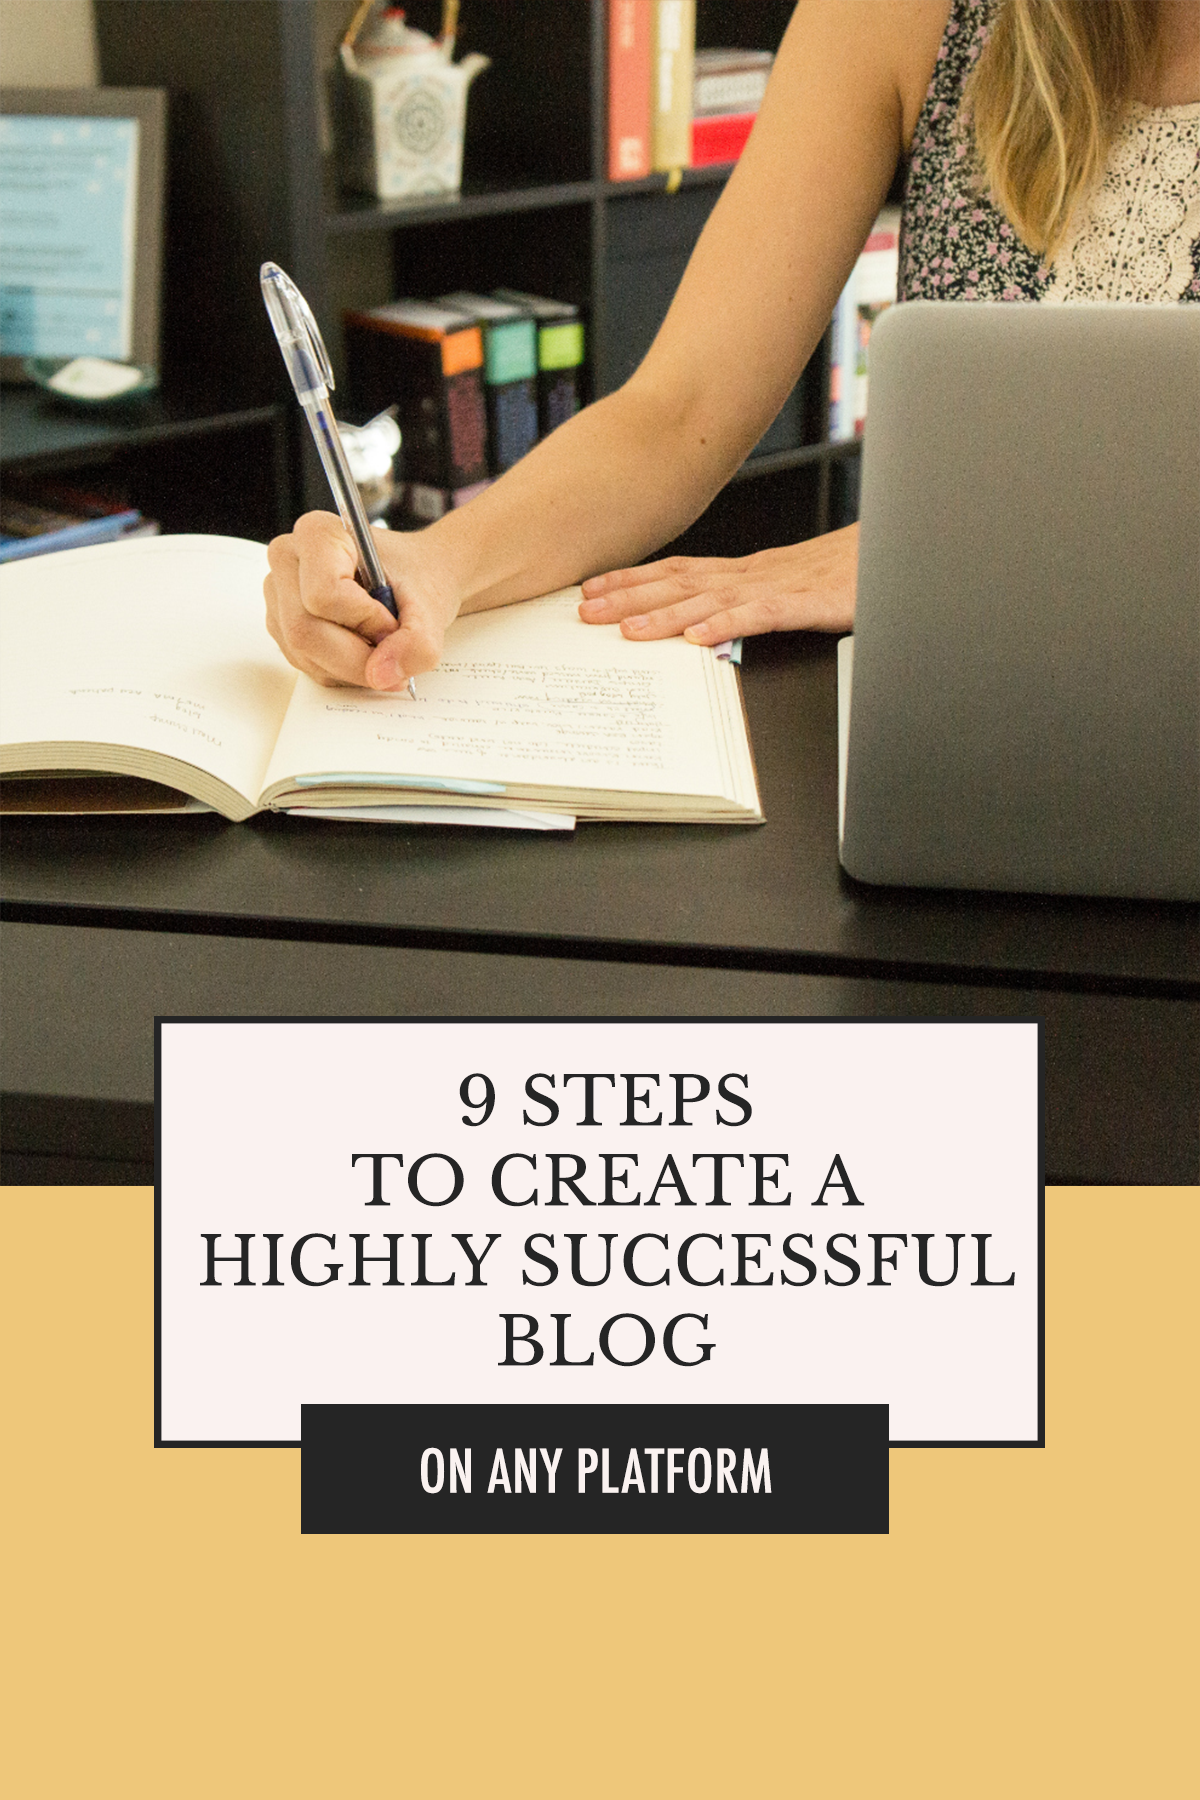 Make money blogging, boost engagement, gain a following and more with these 9 tips for bloggers | 9 Steps to Create a Highly Successful Blog | Alexis the Greek